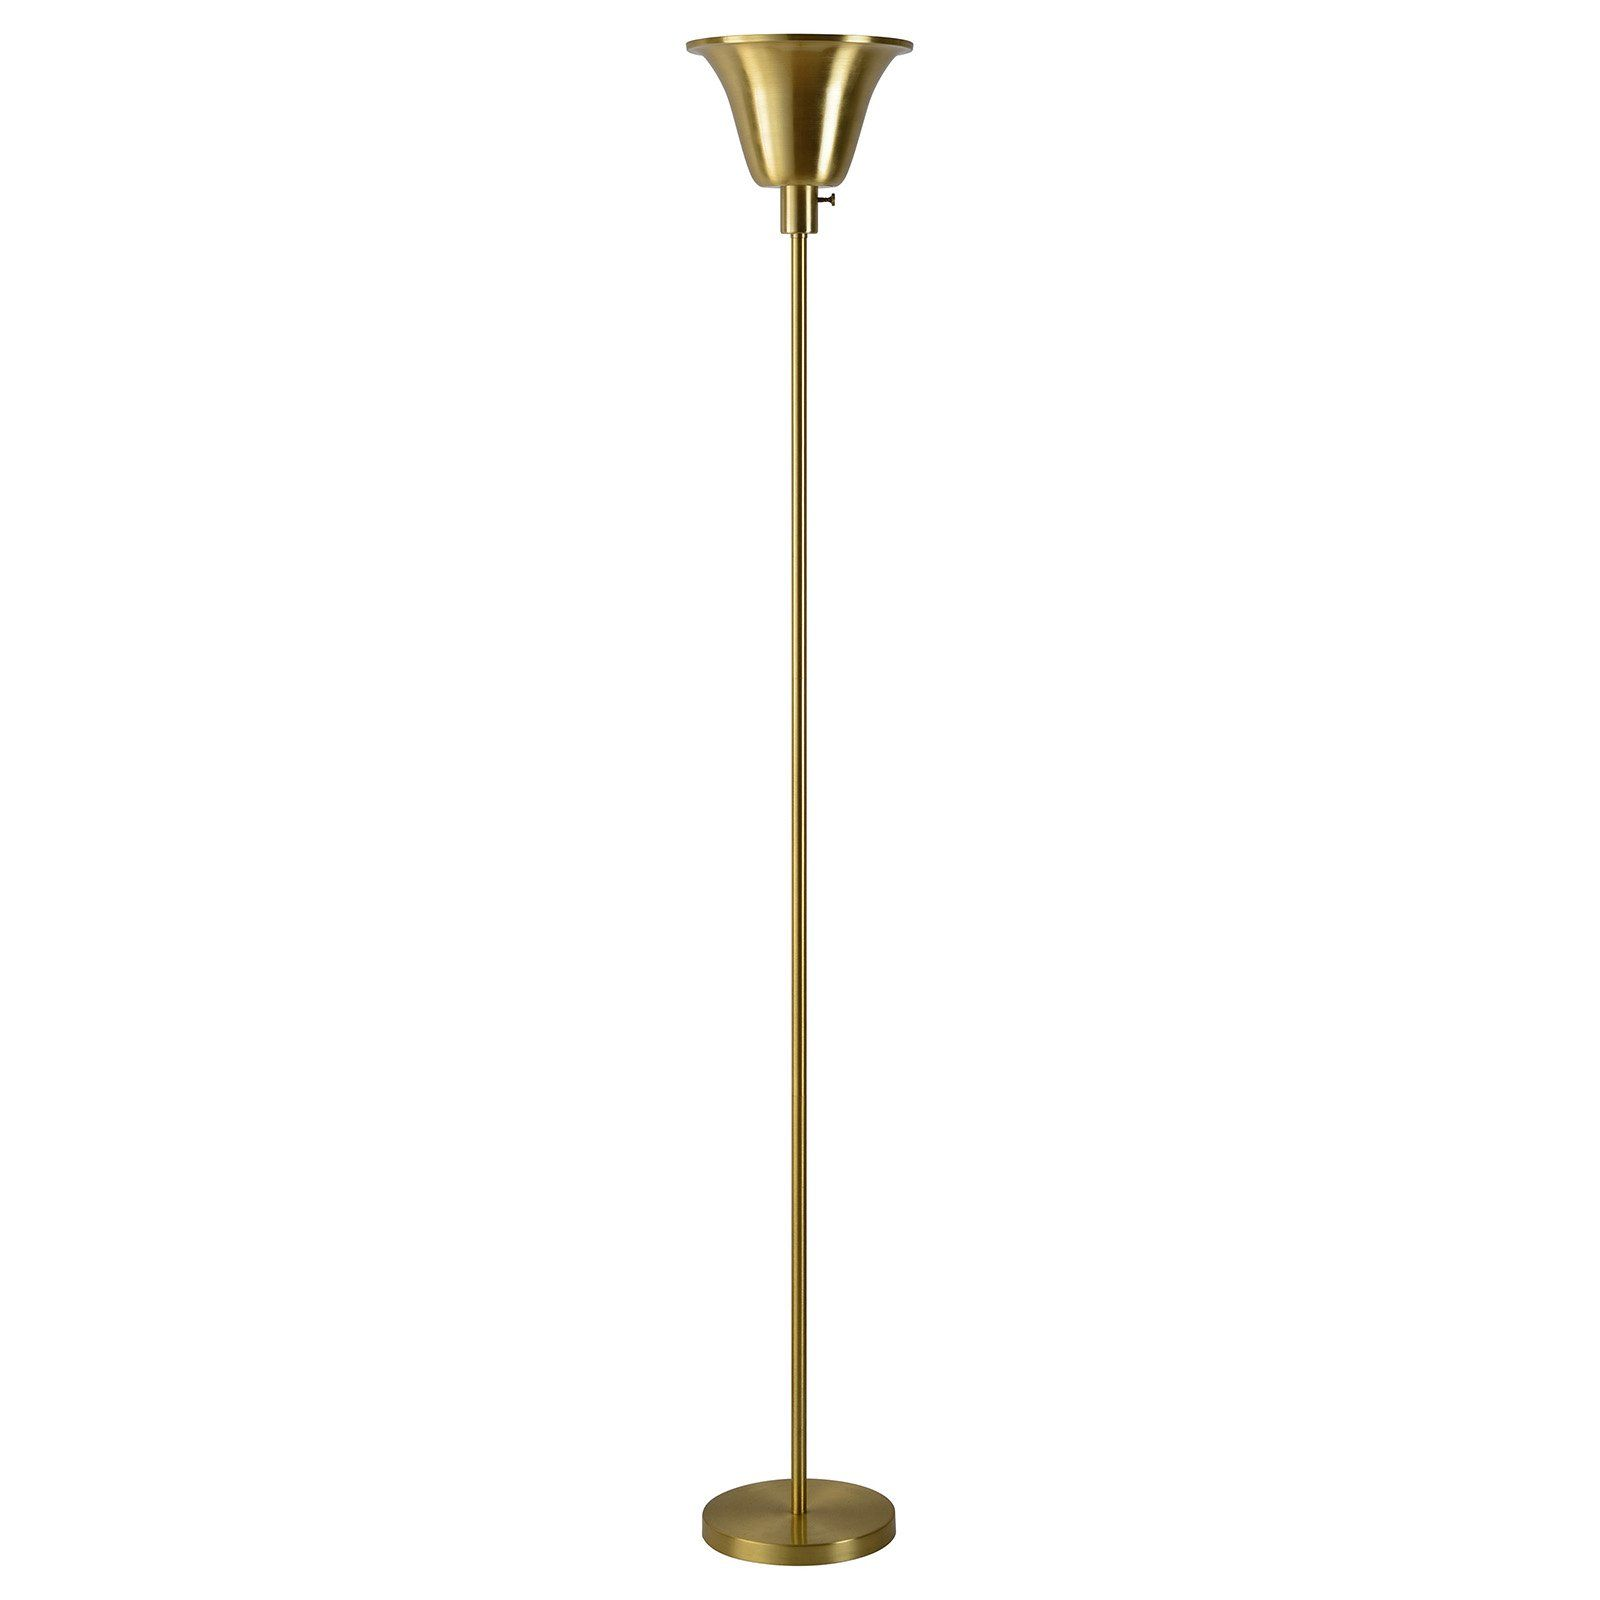 Renwil mariposa torchiere floor lamp lpf products